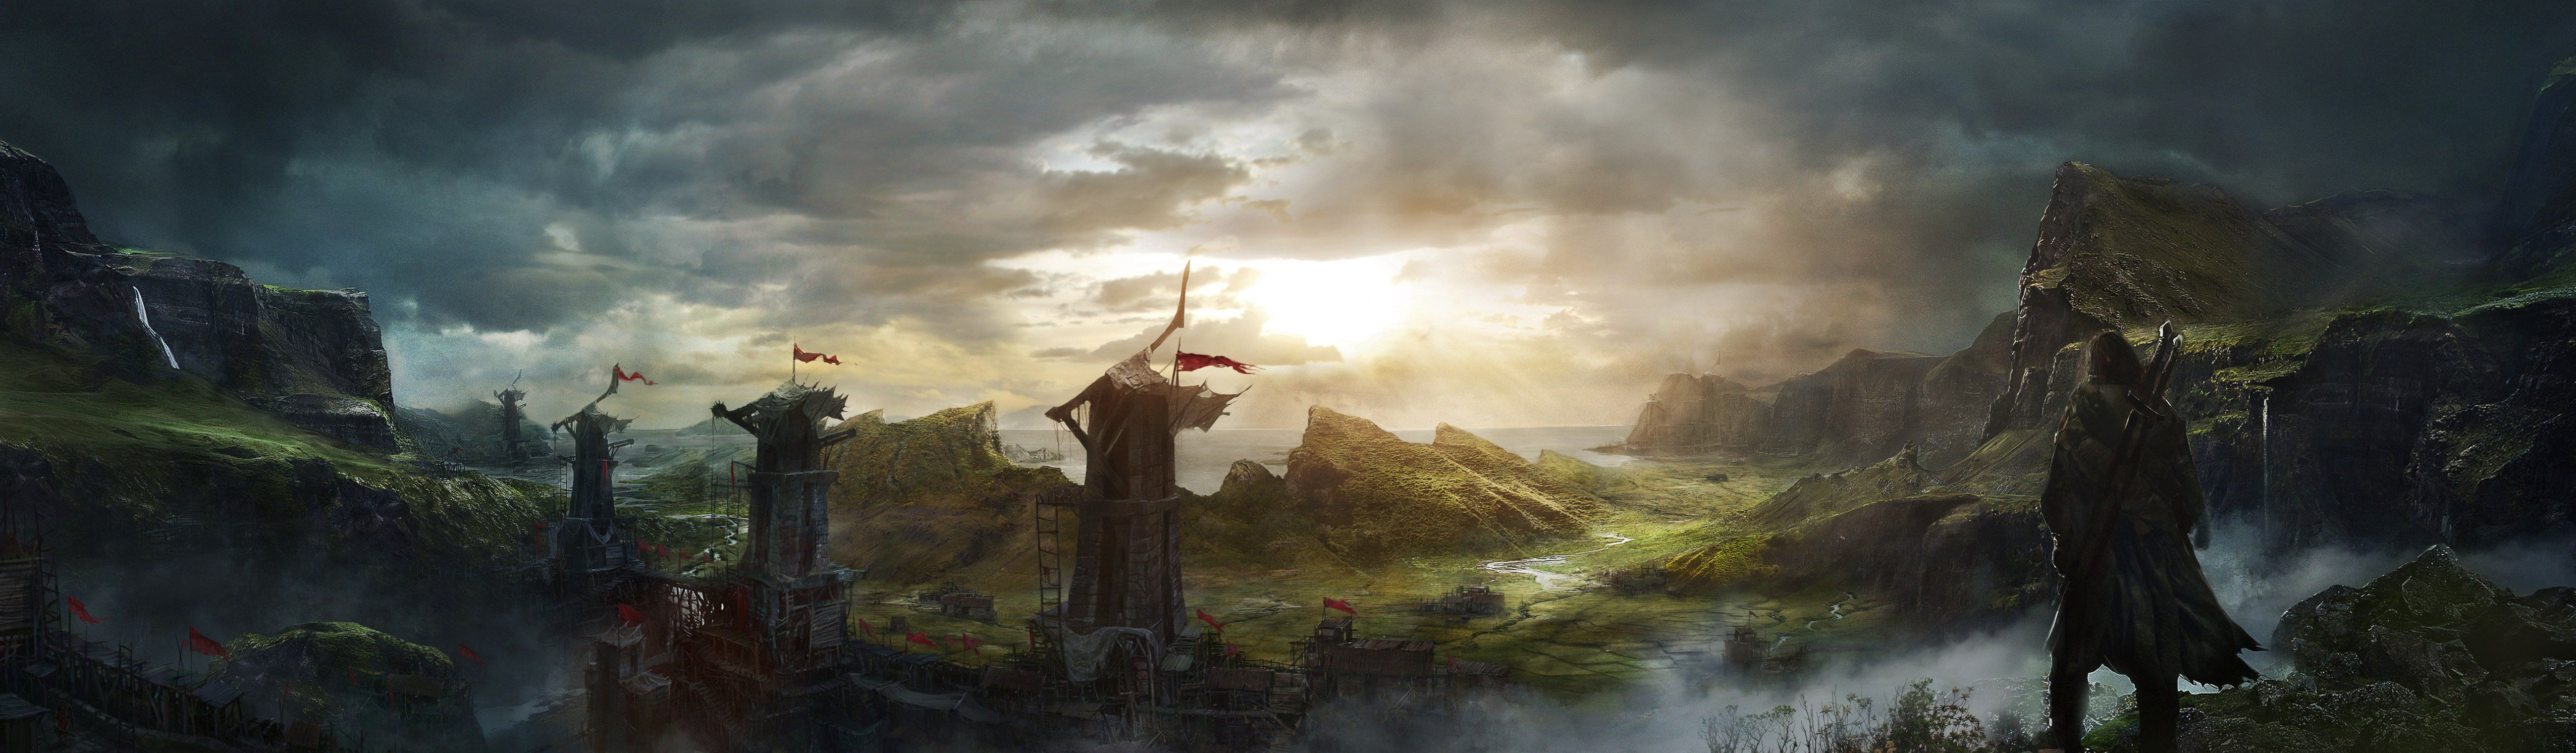 Lord Of The Rings Dual Monitor Wallpapers Top Free Lord Of The